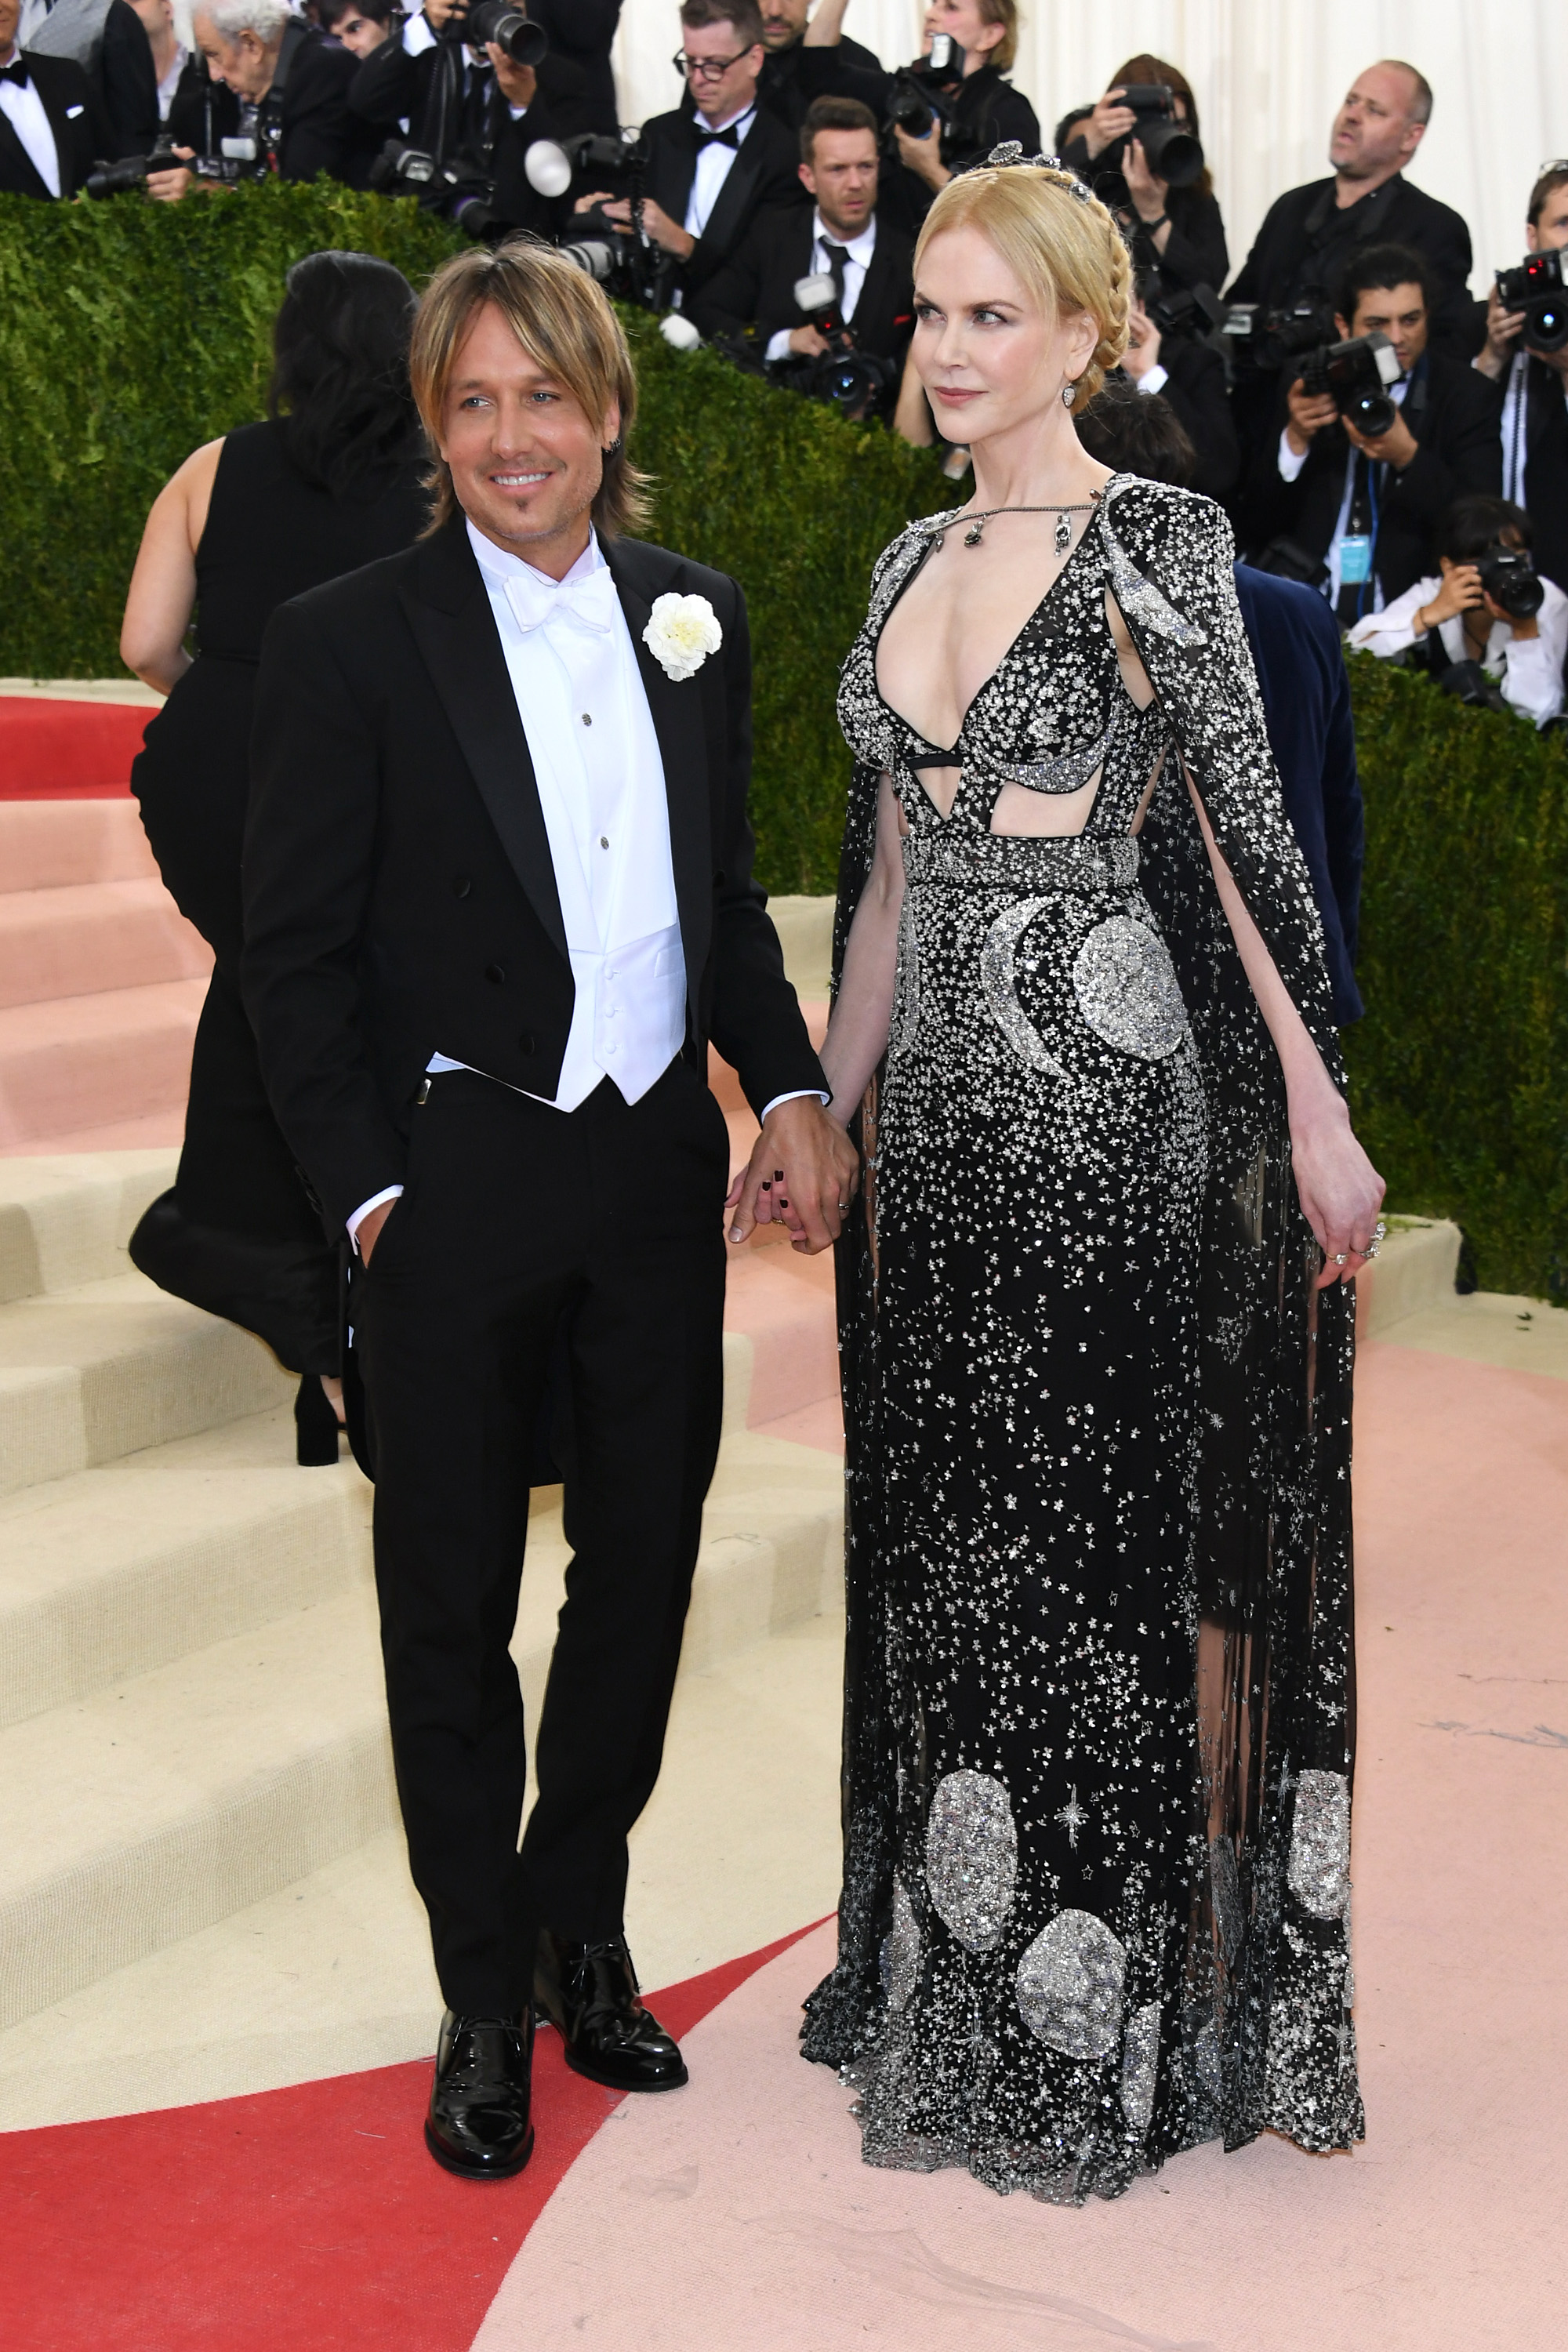 Keith Urban and Nicole Kidman attend  Manus x Machina: Fashion In An Age Of Technology  Costume Institute Gala at Metropolitan Museum of Art on May 2, 2016 in New York City.